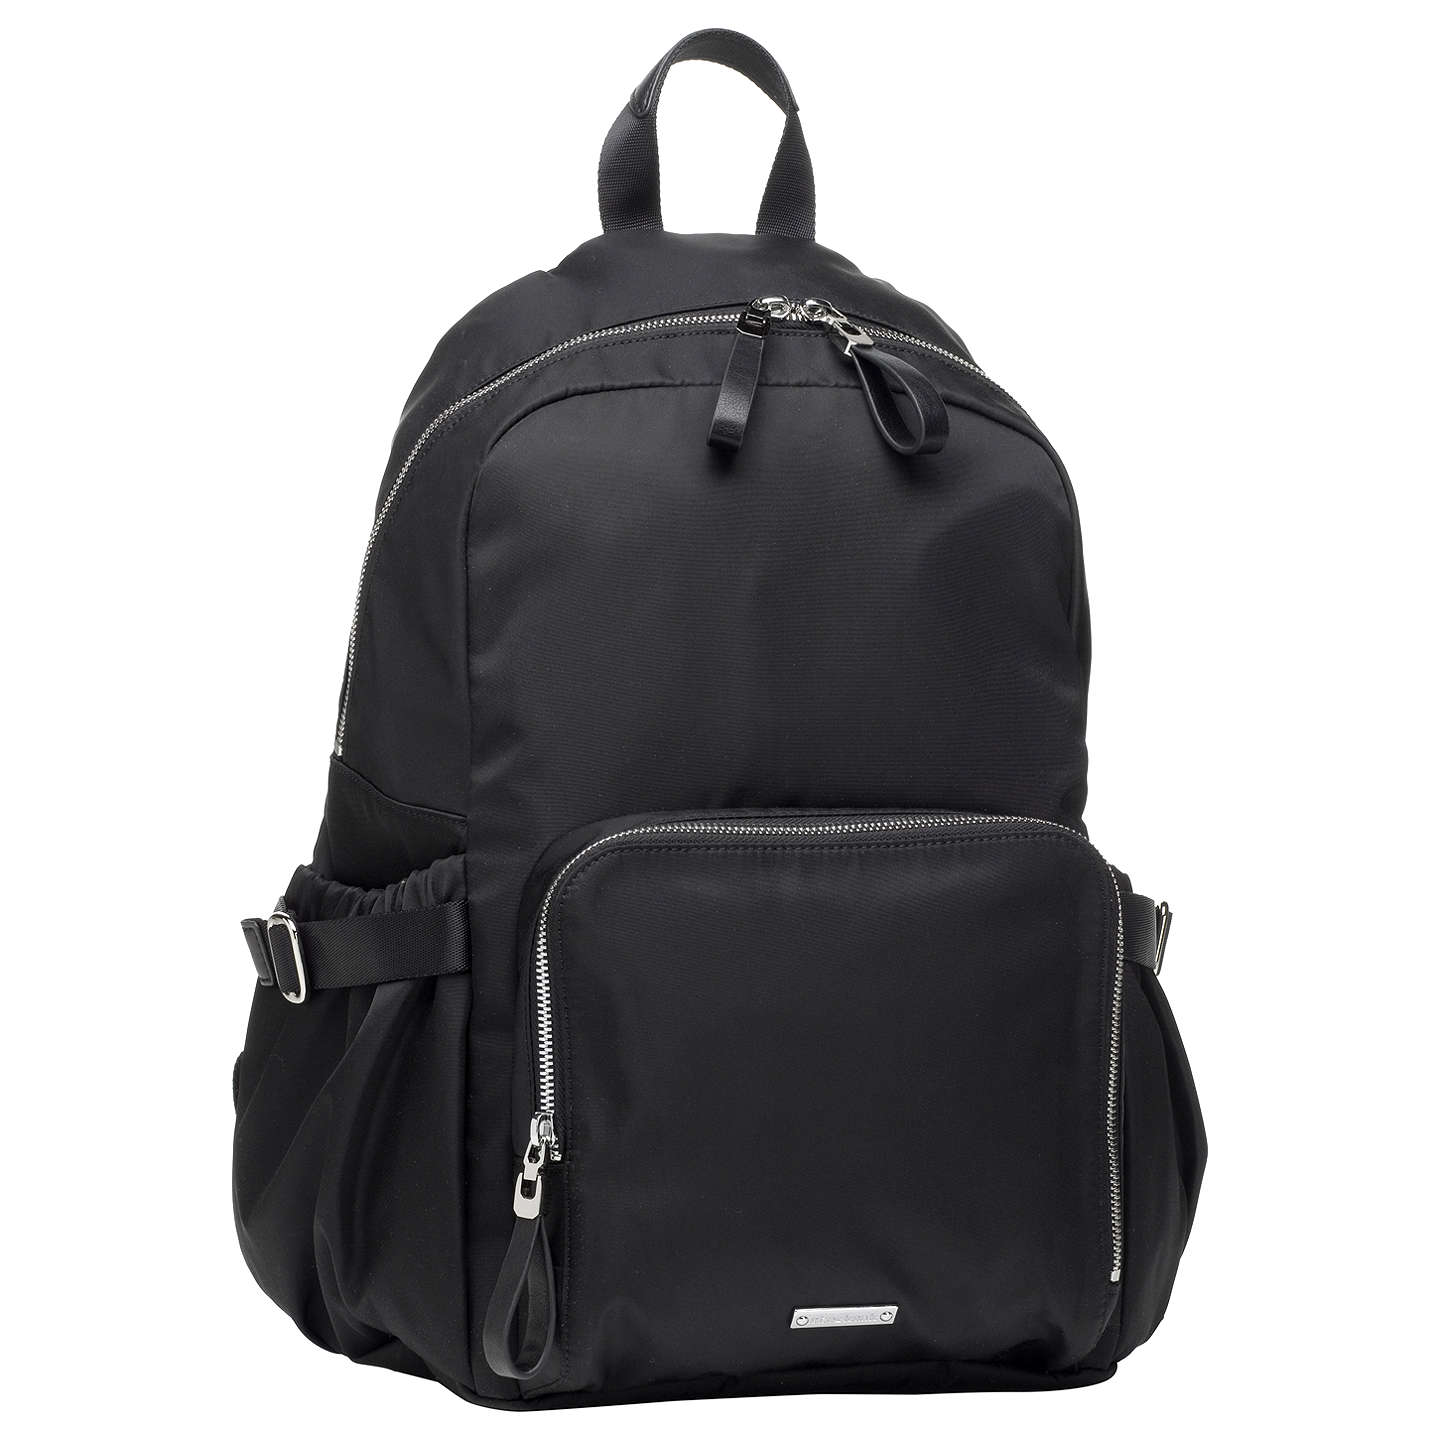 storksak-hero-changing-backpack,-black by storksak